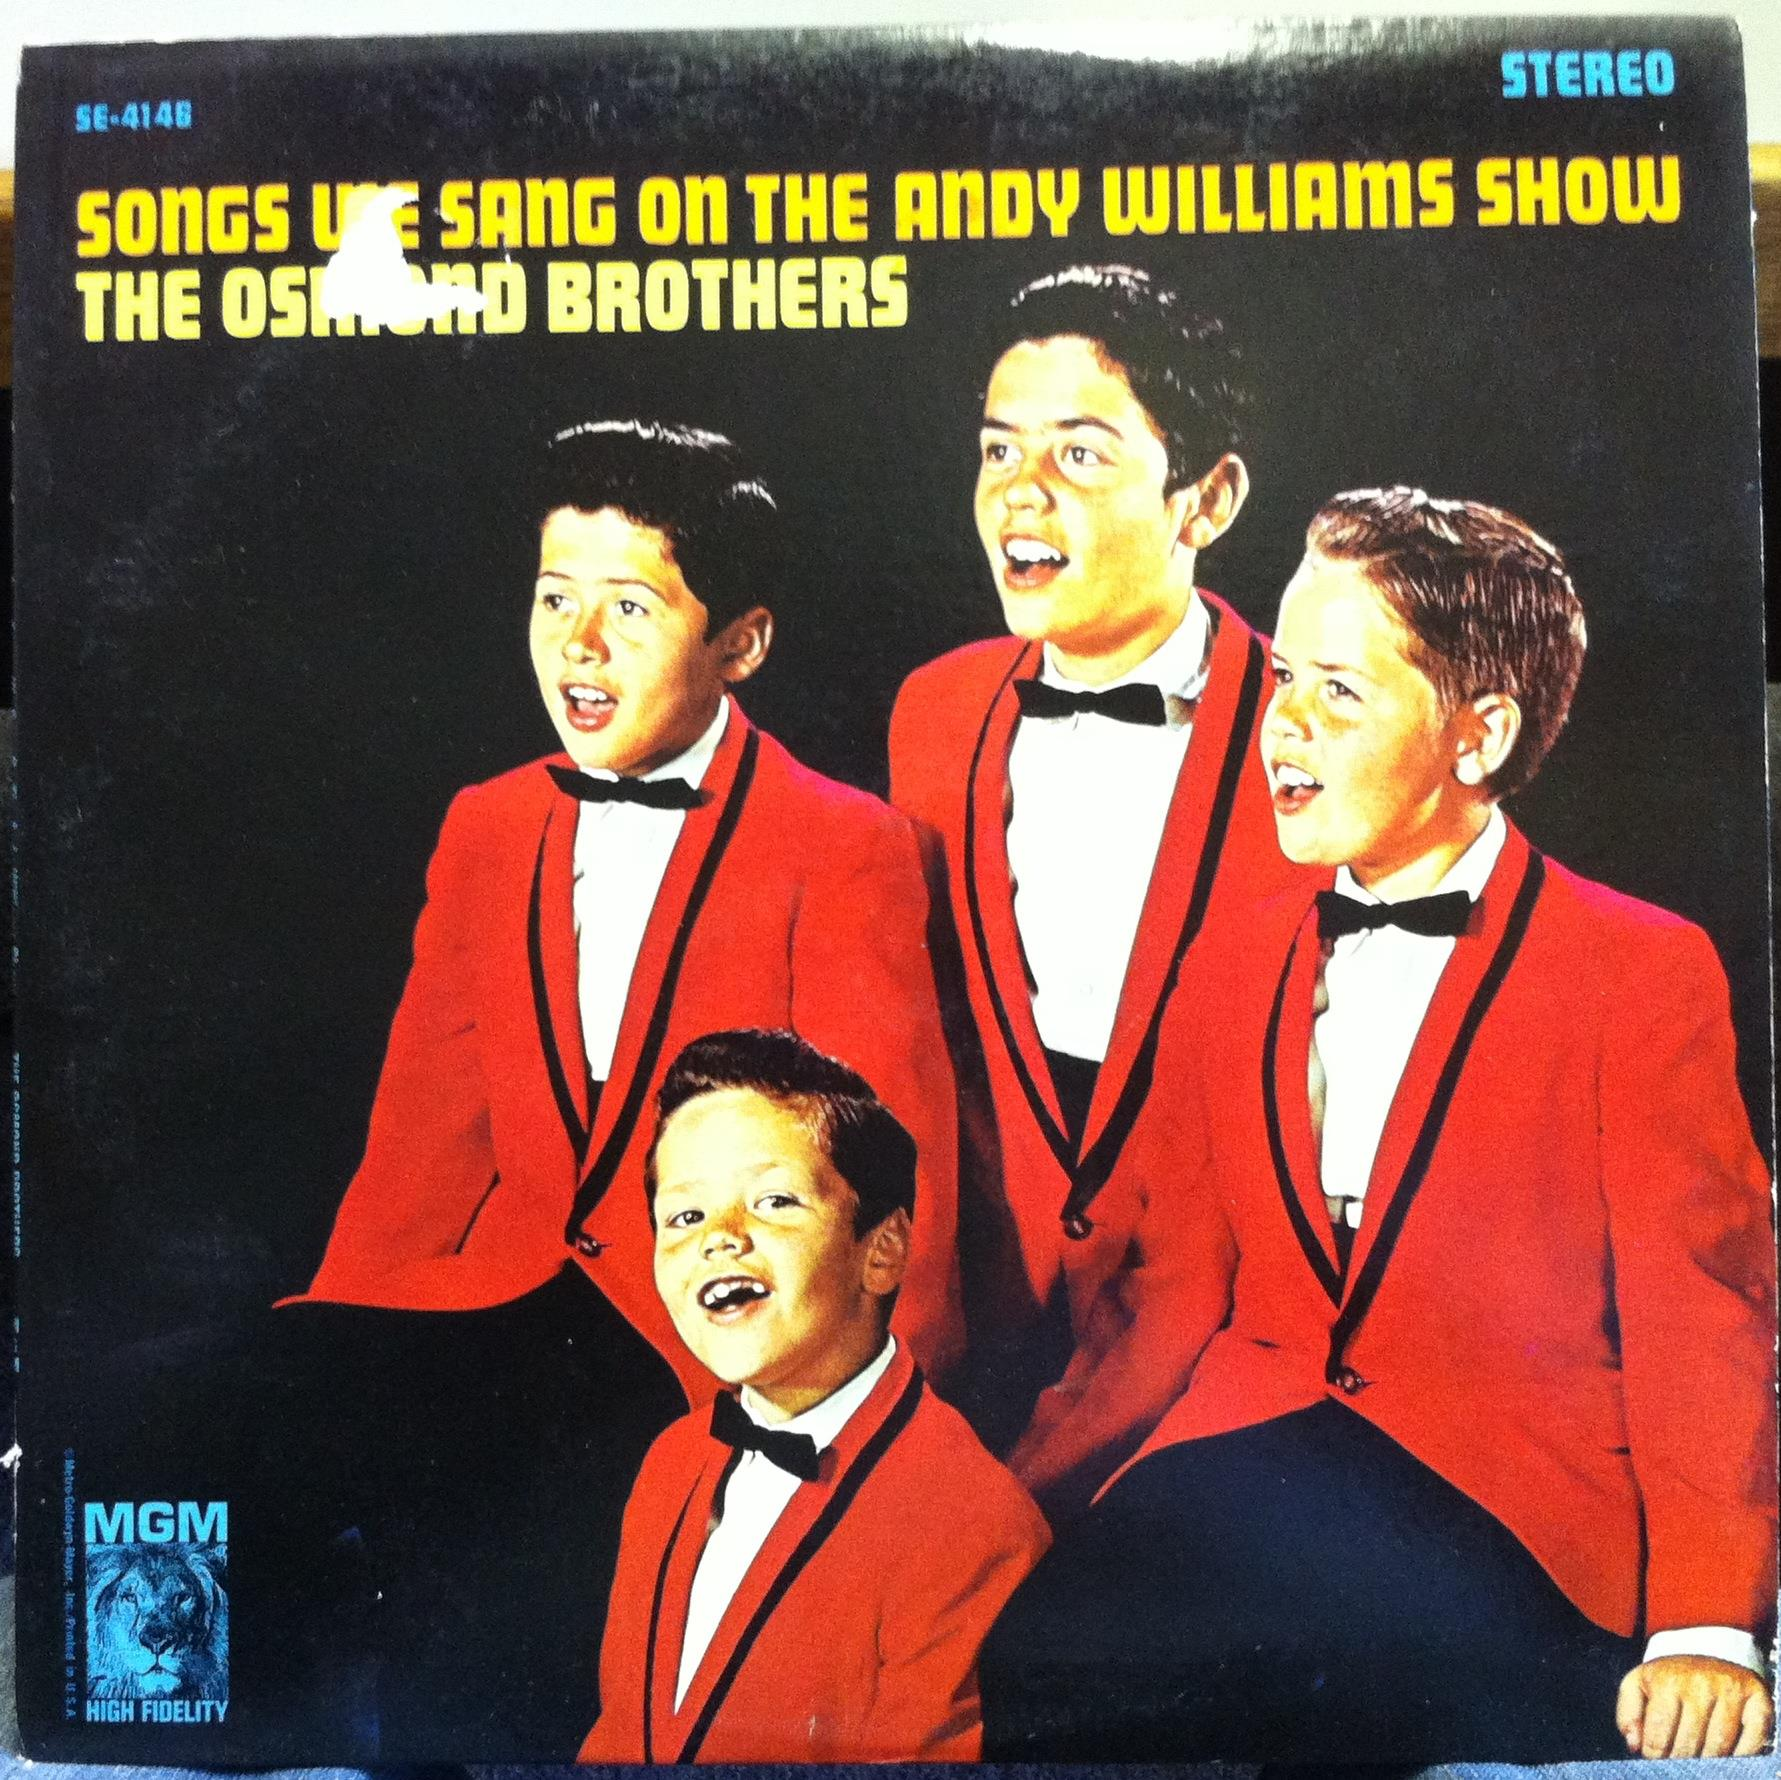 OSMOND BROTHERS - The Osmond Brothers Songs We Sang On The Andy Williams Show Lp Vg+ Se-4146 (songs We Sang On The And